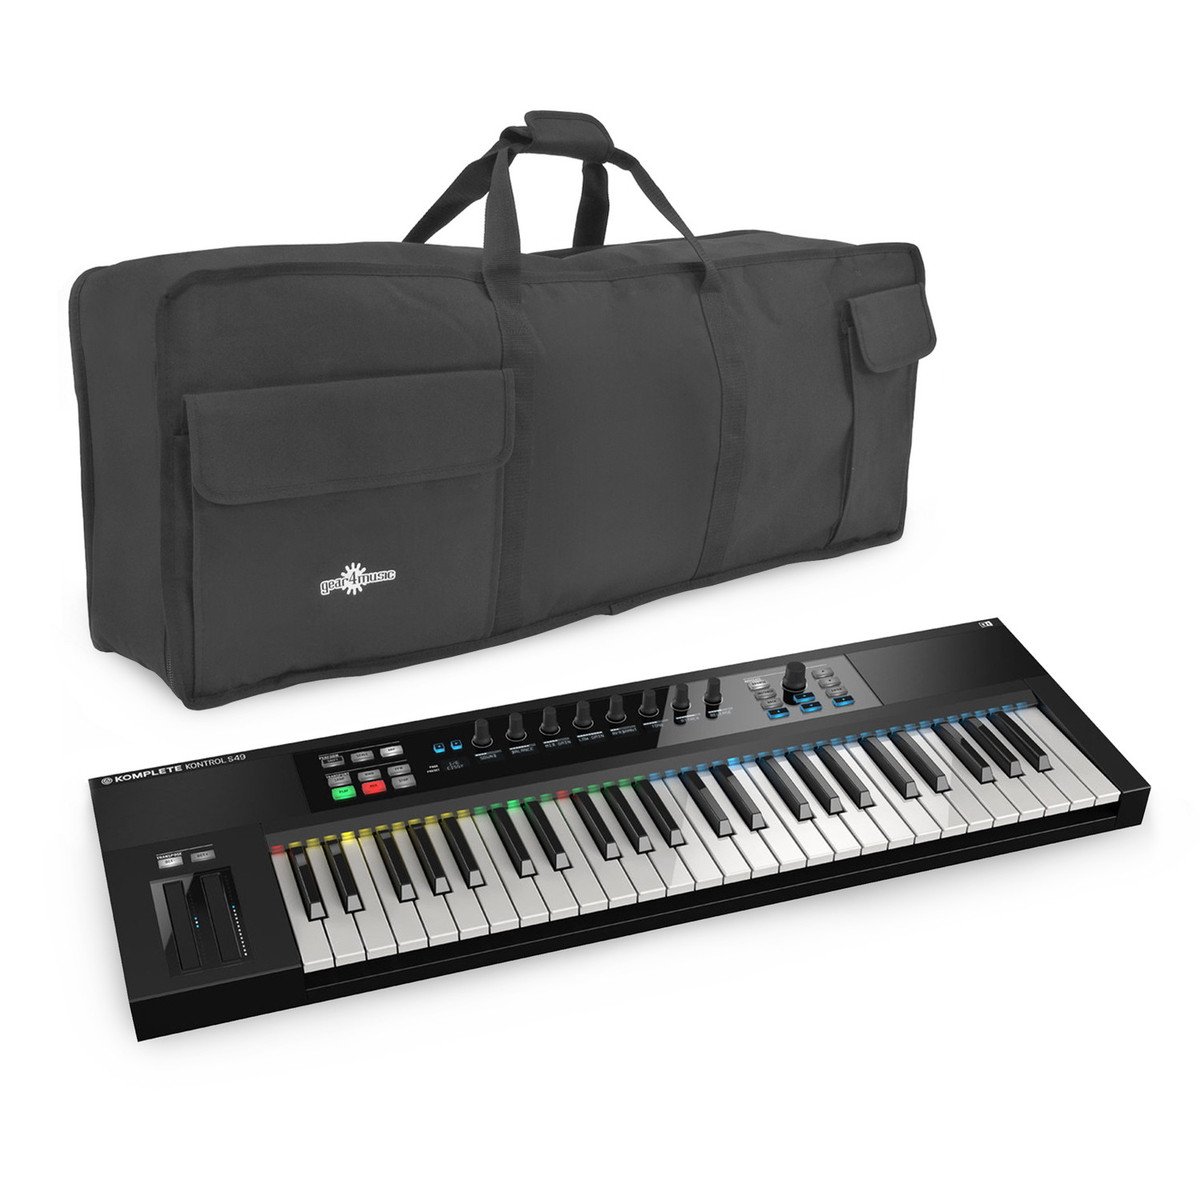 native instruments komplete kontrol s49 with bag at gear4music. Black Bedroom Furniture Sets. Home Design Ideas